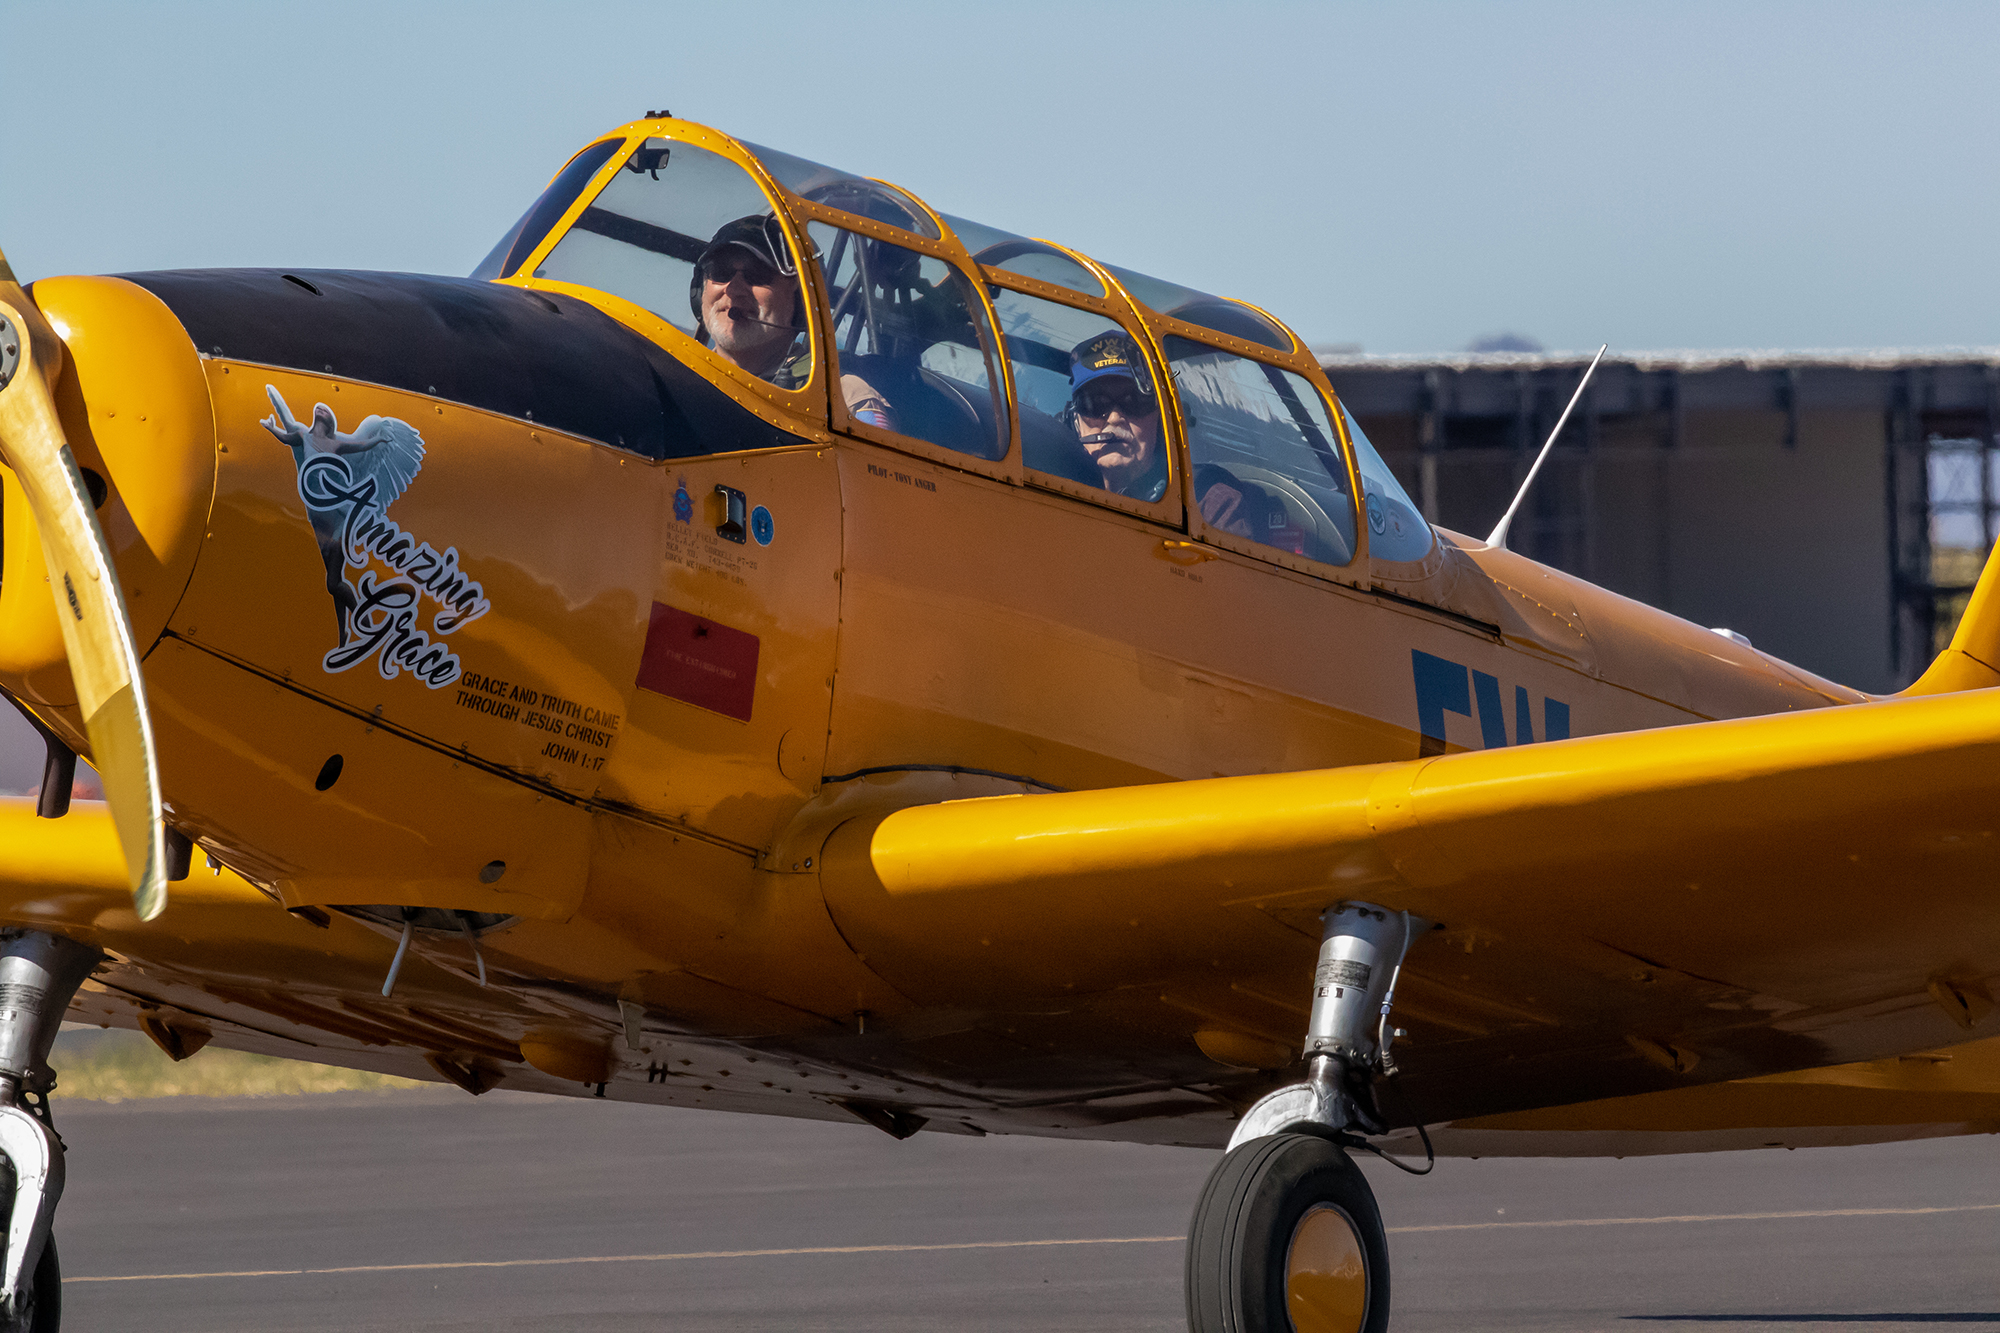 Tony Anger and Norman Langeliers land Amazing Grace, Anger's 77-year-old Fairchild PT-26 trainer, at Mesa's Falcon Field Airport on Feb. 21. (Photo by Rachel Stapholz/Cronkite News)